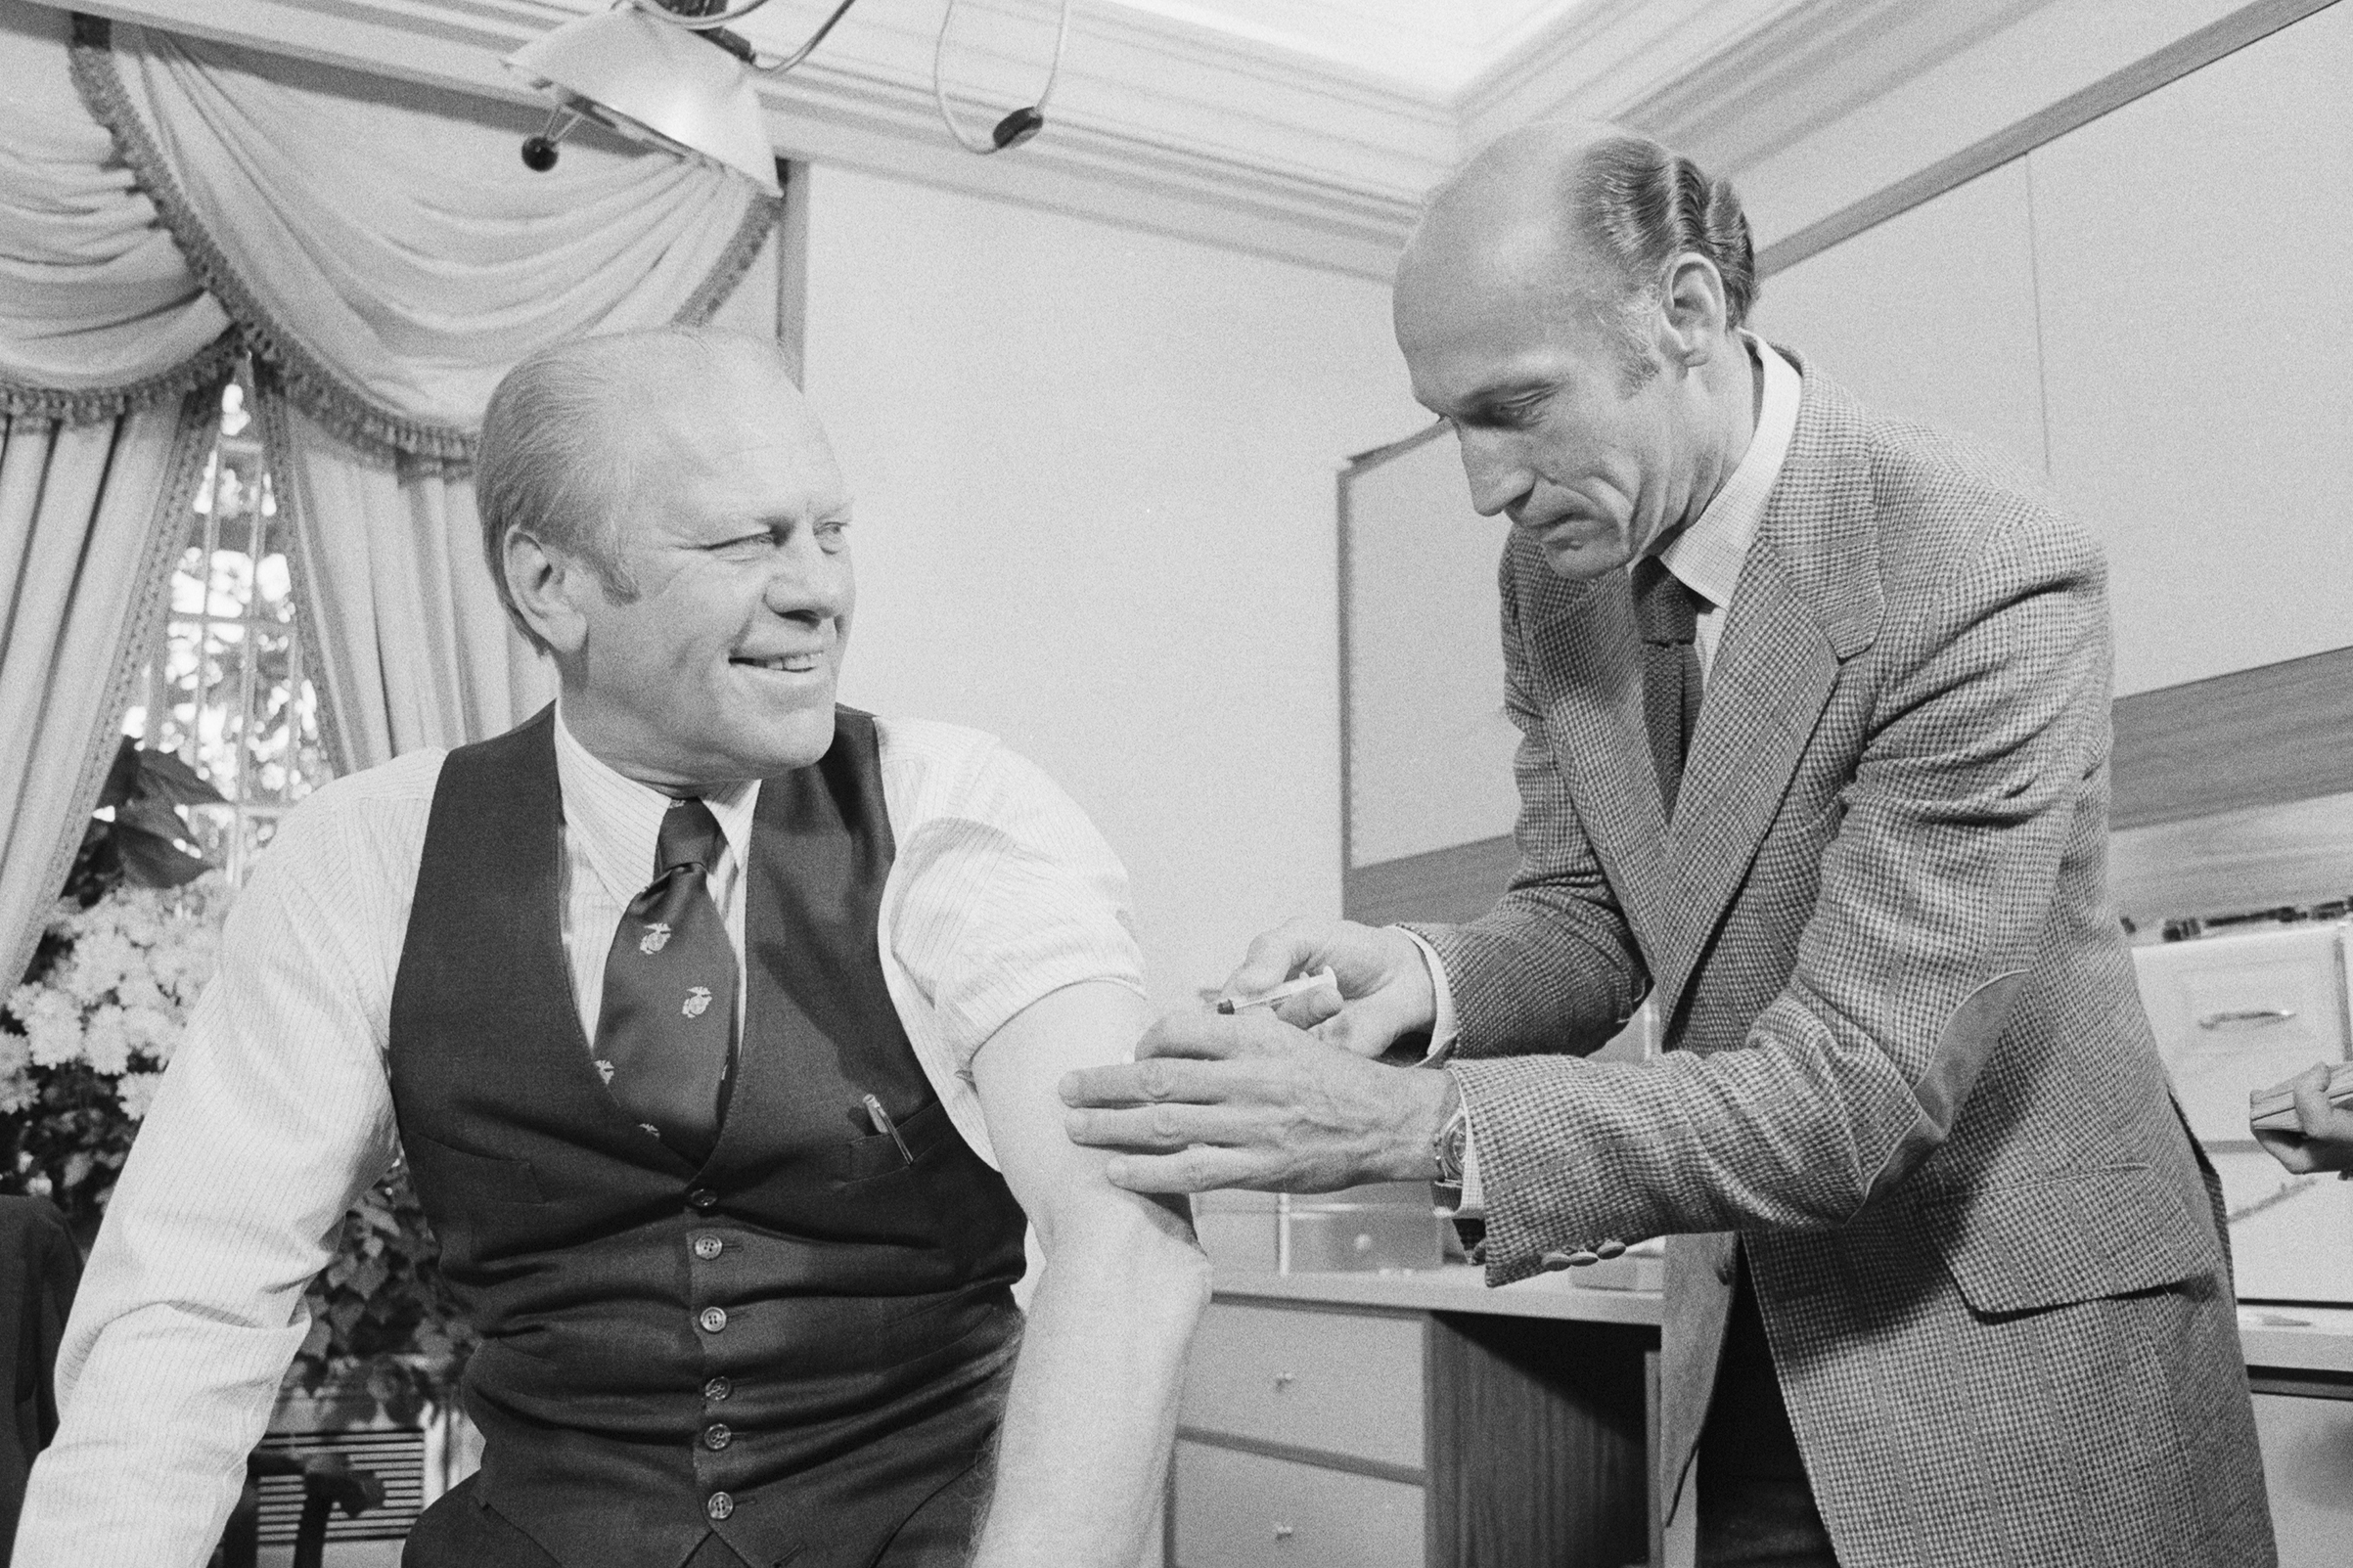 President Ford gets swine flu shot from Wm. Lukash on Oct. 14, 1976.